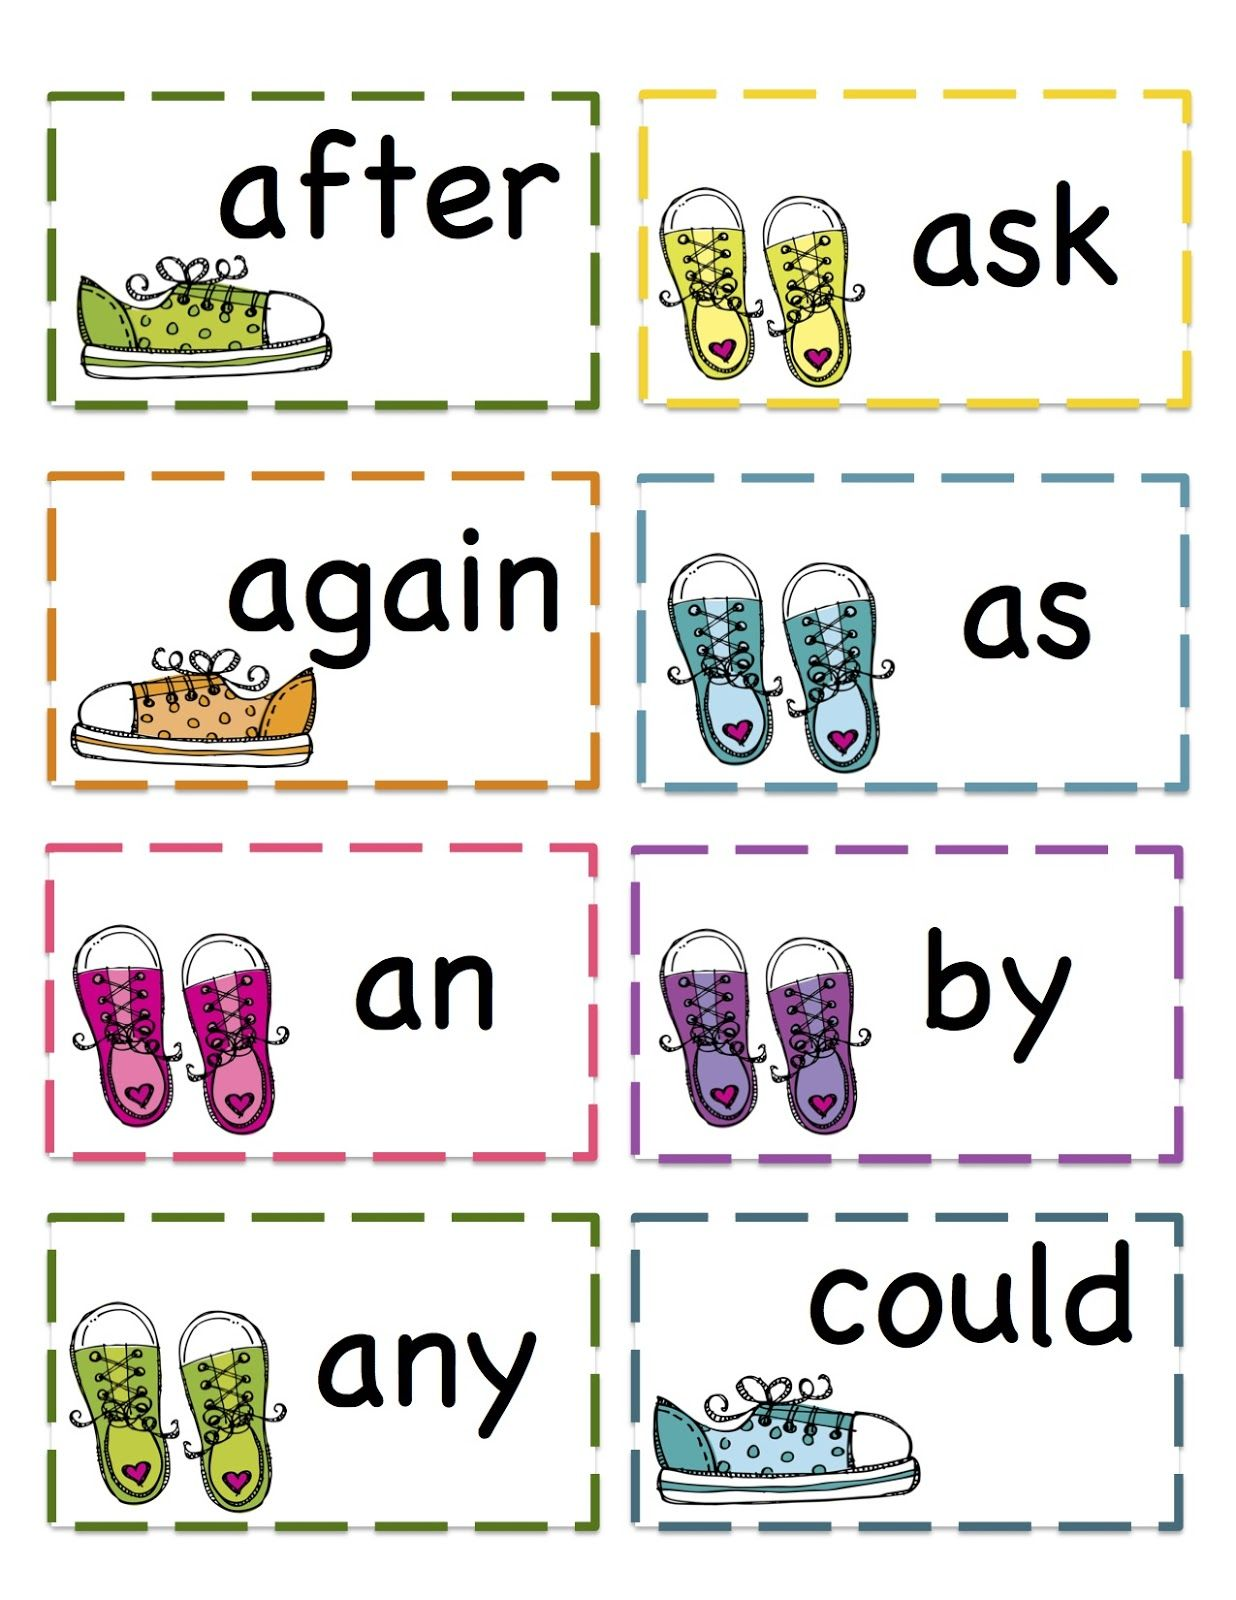 Worksheet First Words Flash Cards Printable worksheet first words flash cards printable mikyu free 1000 images about sight on pinterest